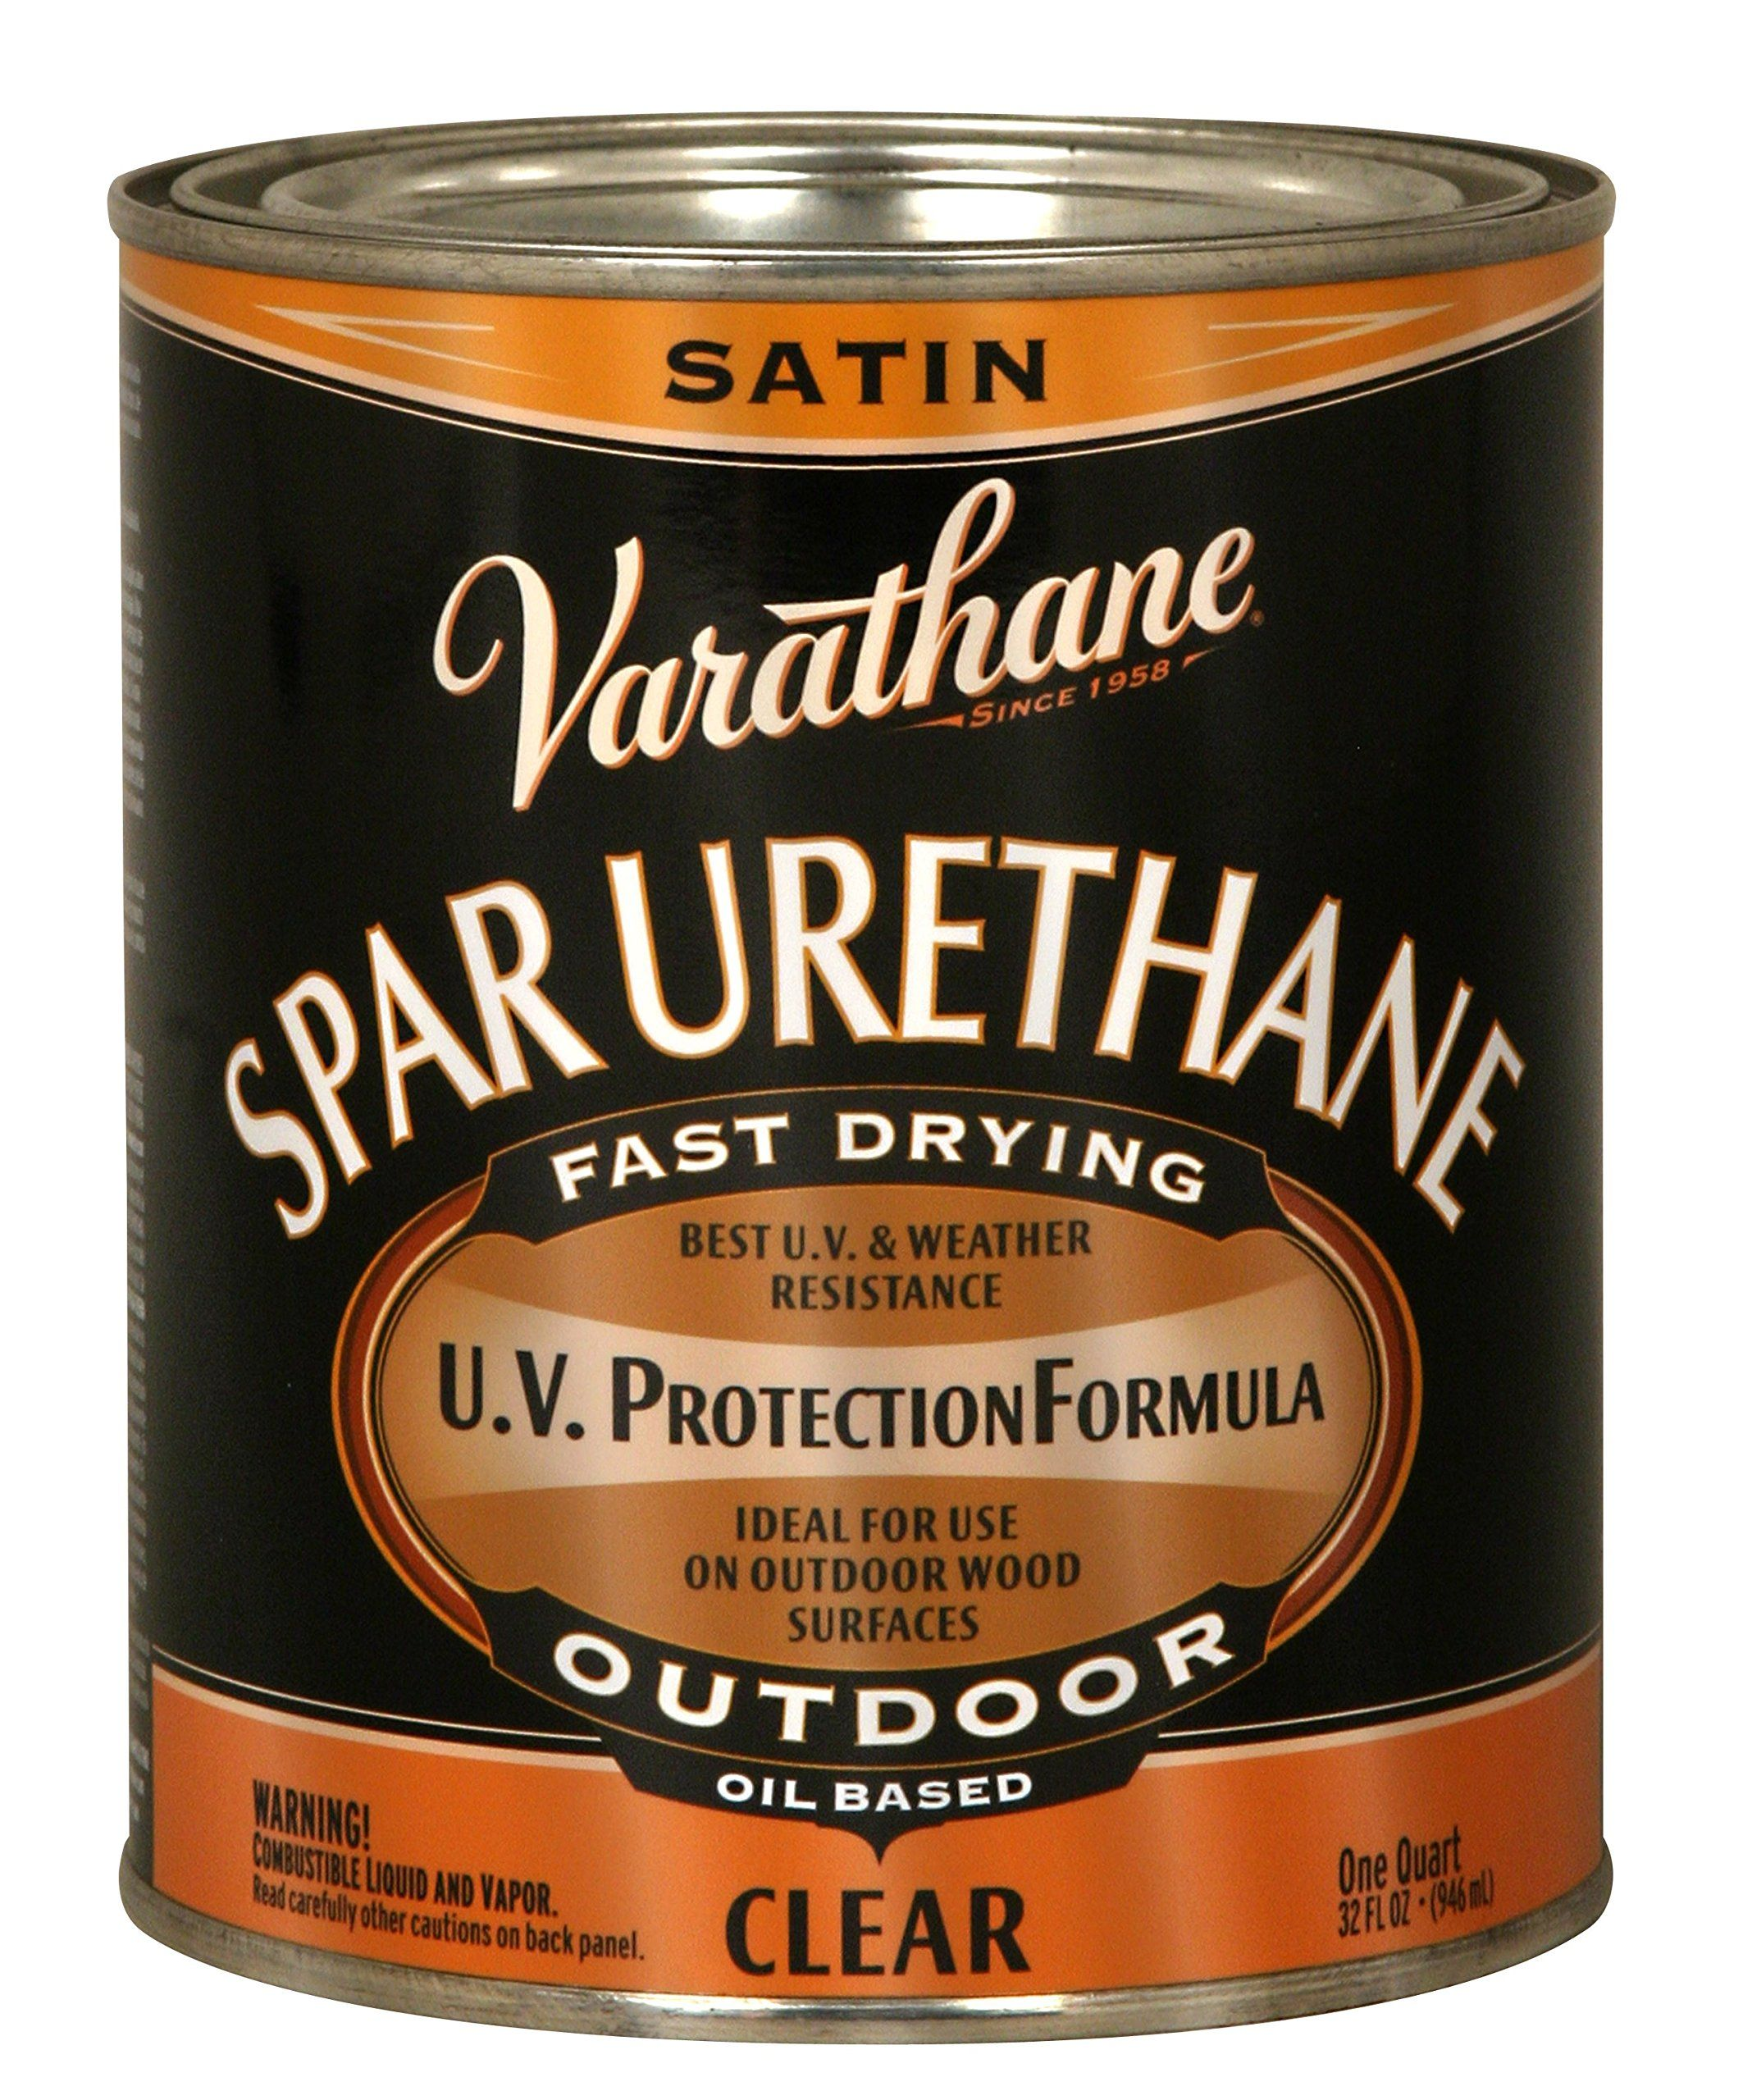 Rust Oleum Varathane 9341h 1 Quart Classic Clear Oil Based Outdoor Spar Urethane Satin Finish Apparently Works With Images Polyurethane Floors Varathane It Is Finished